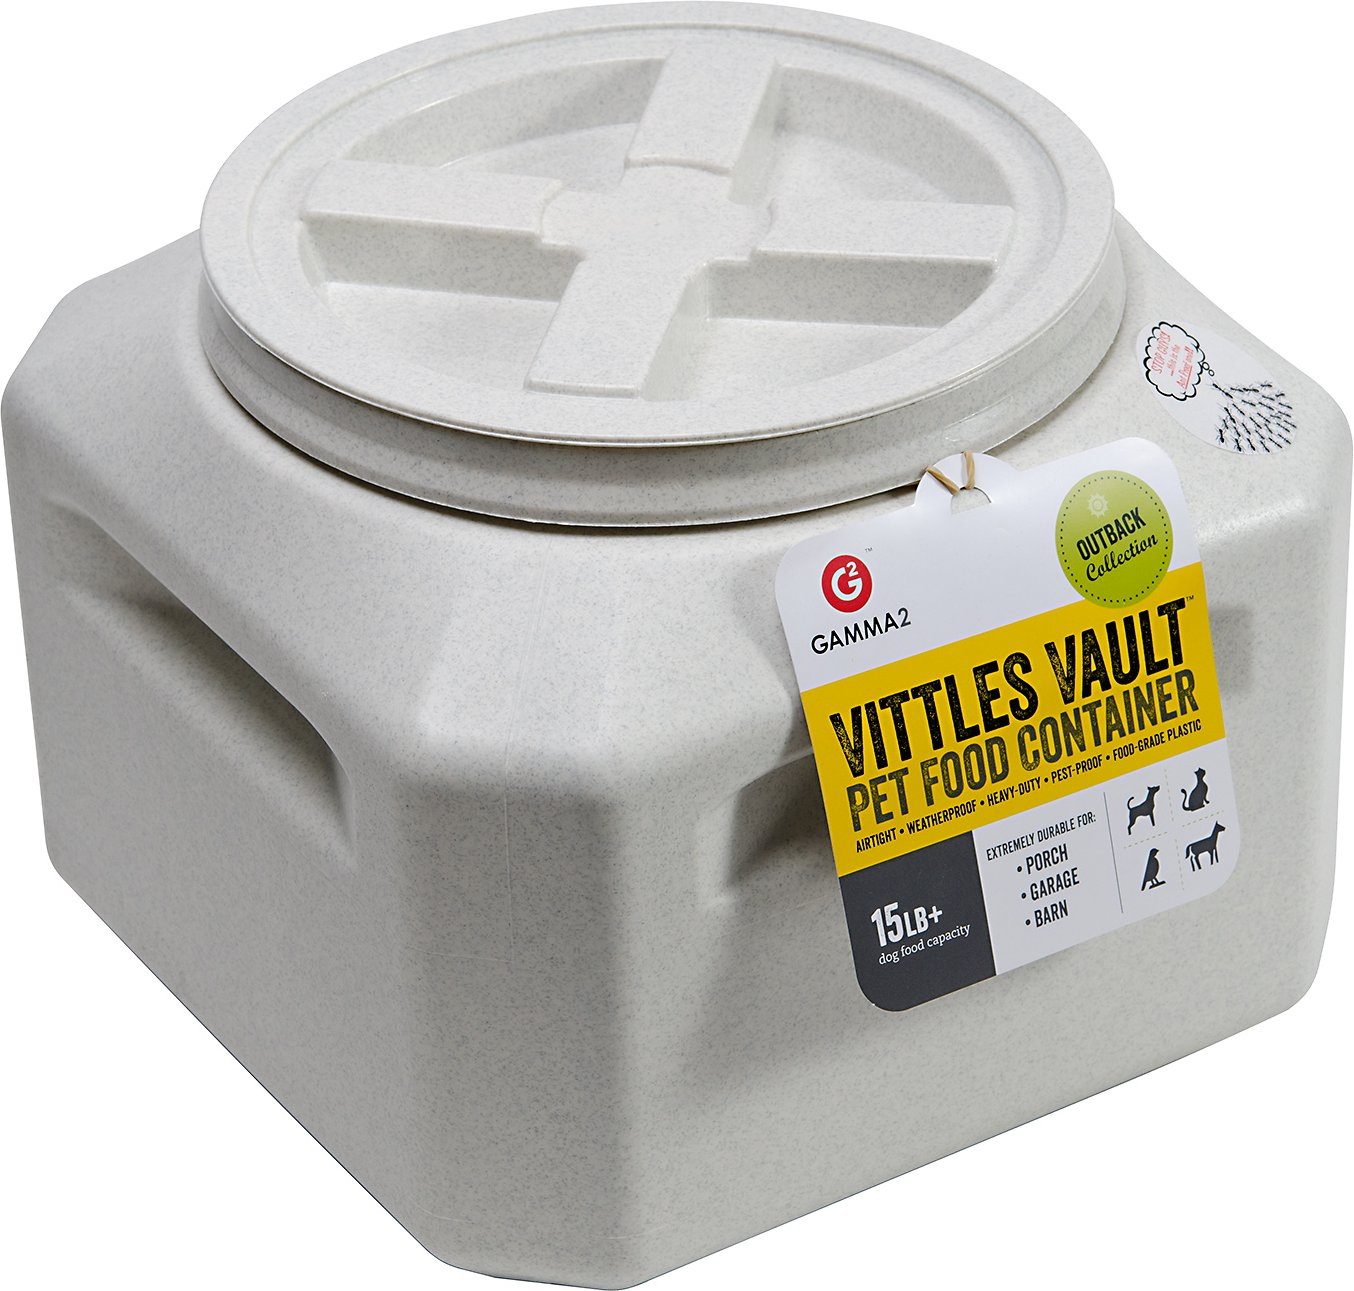 Gamma2 Vittles Vault Plus Pet Food Storage, 15-lb